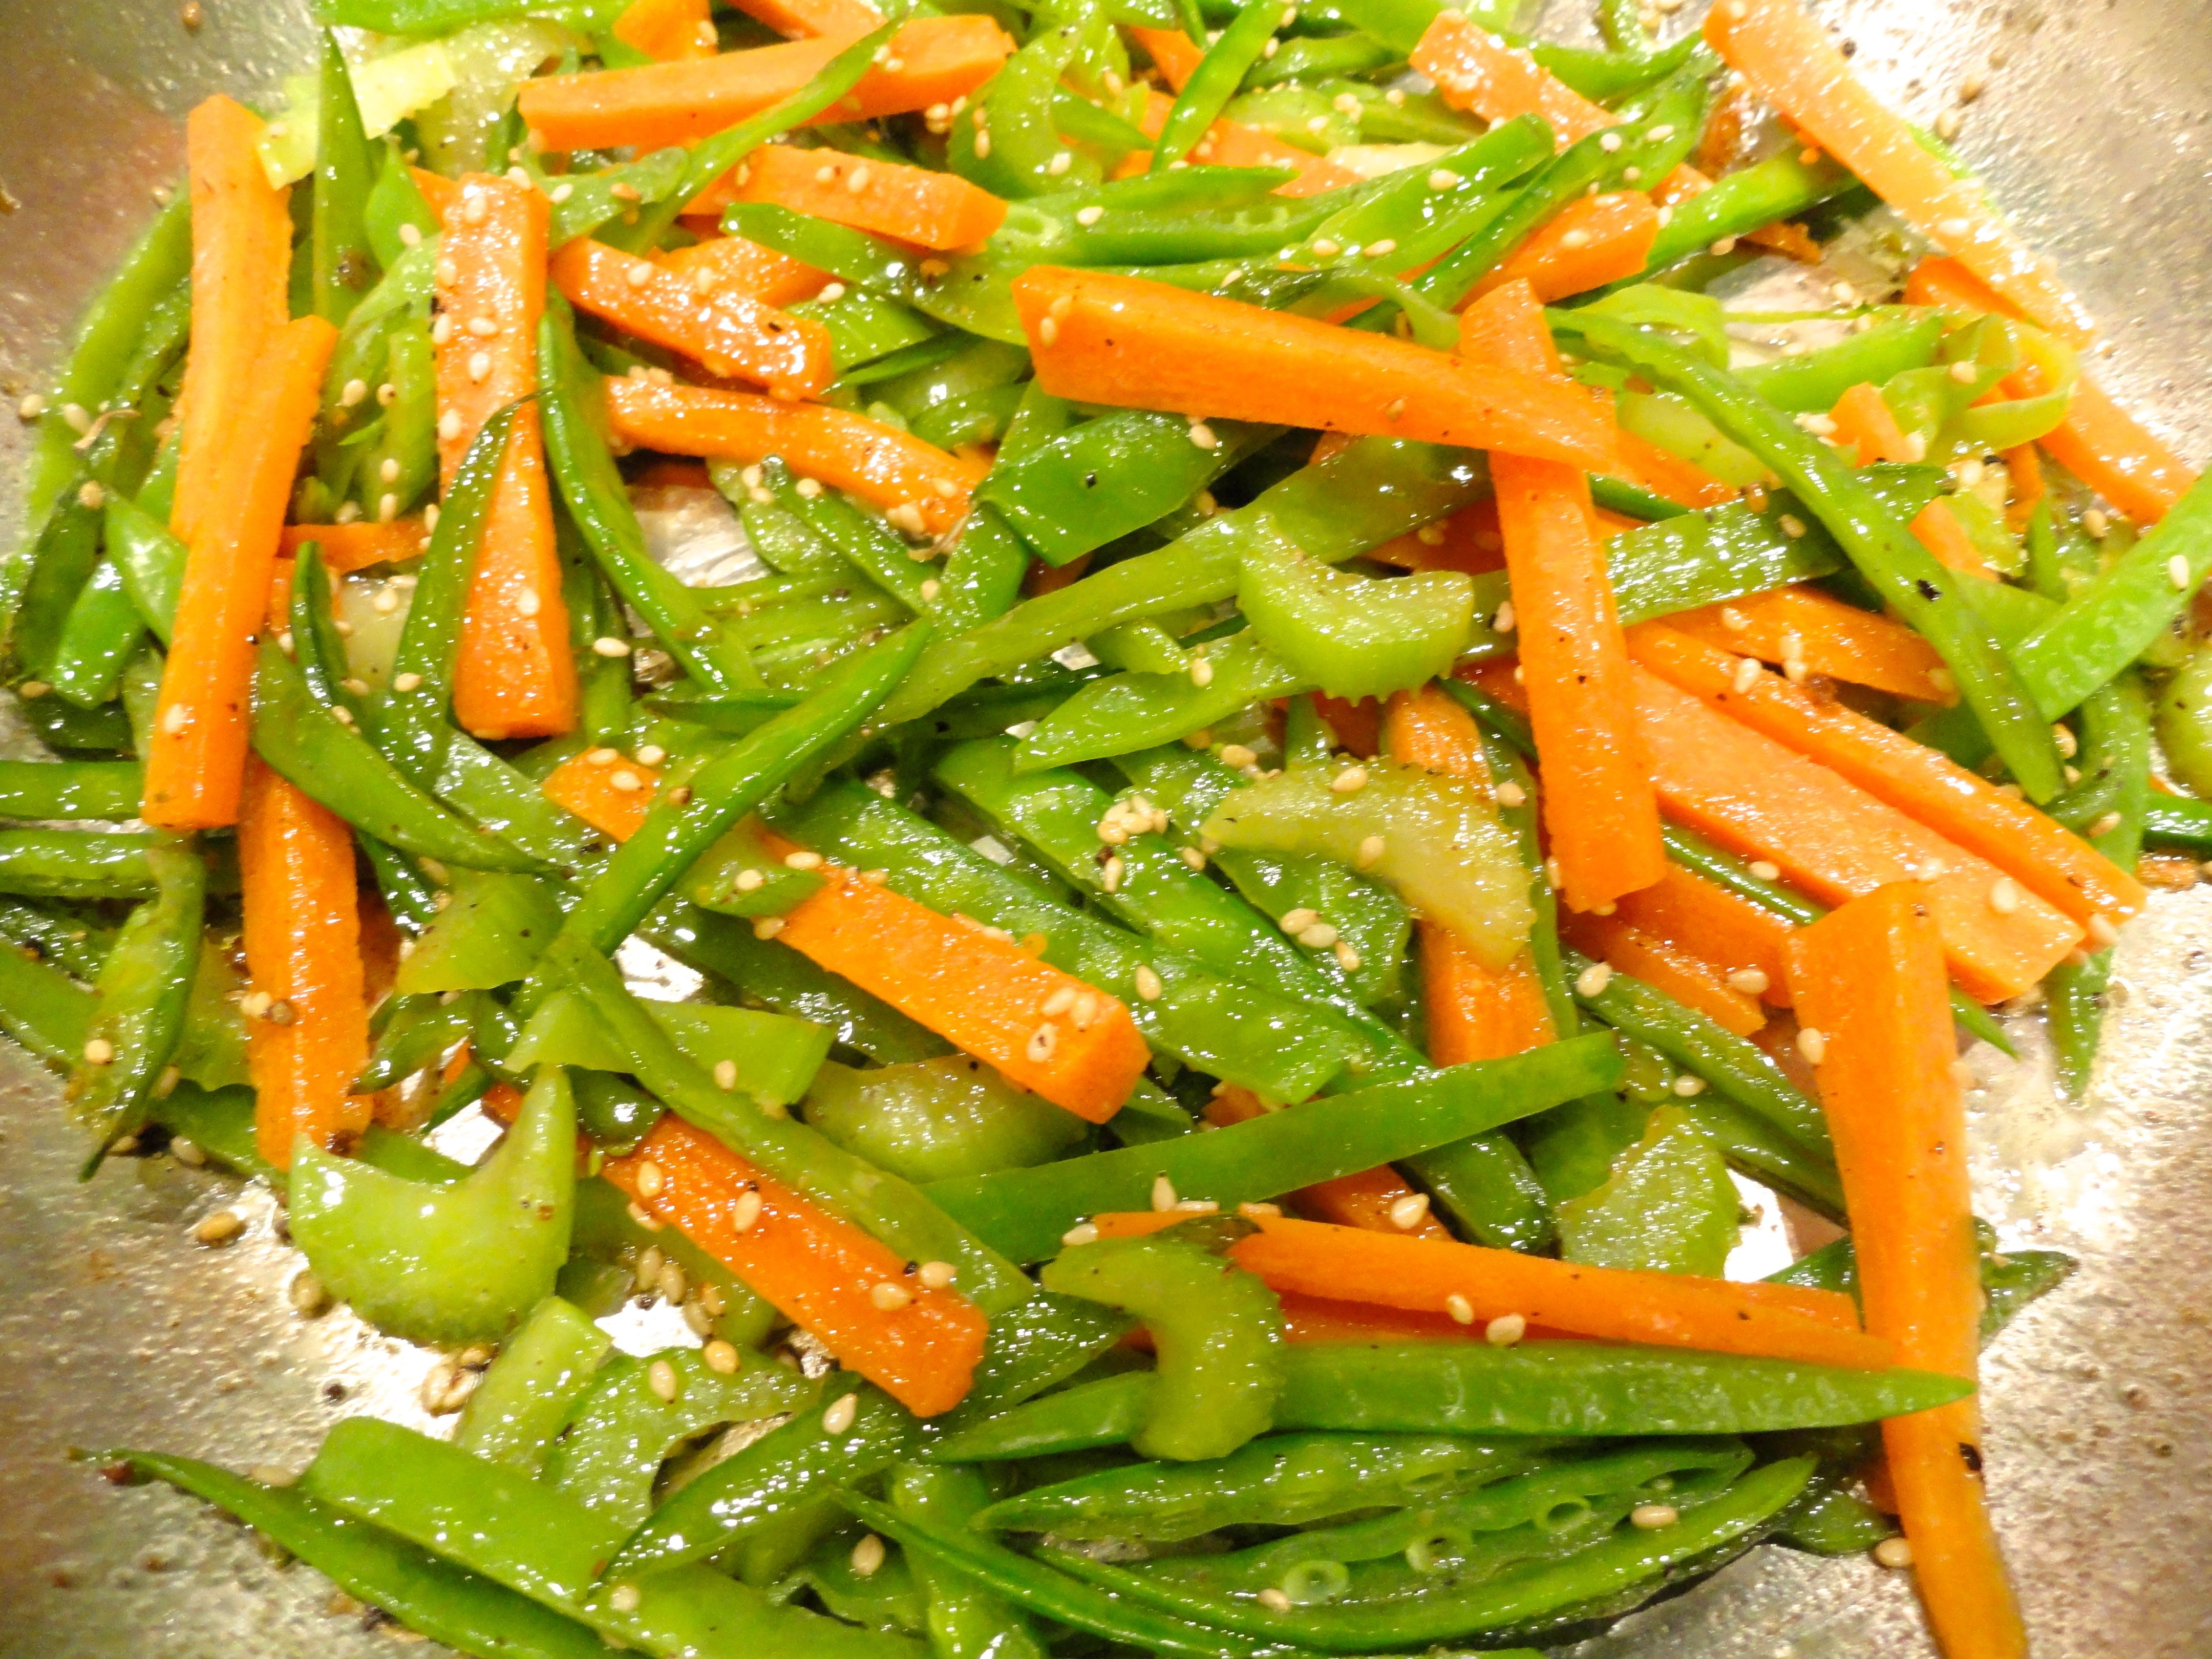 Watch Chinese-Style Stir-fry With Chicken and Vegetables video